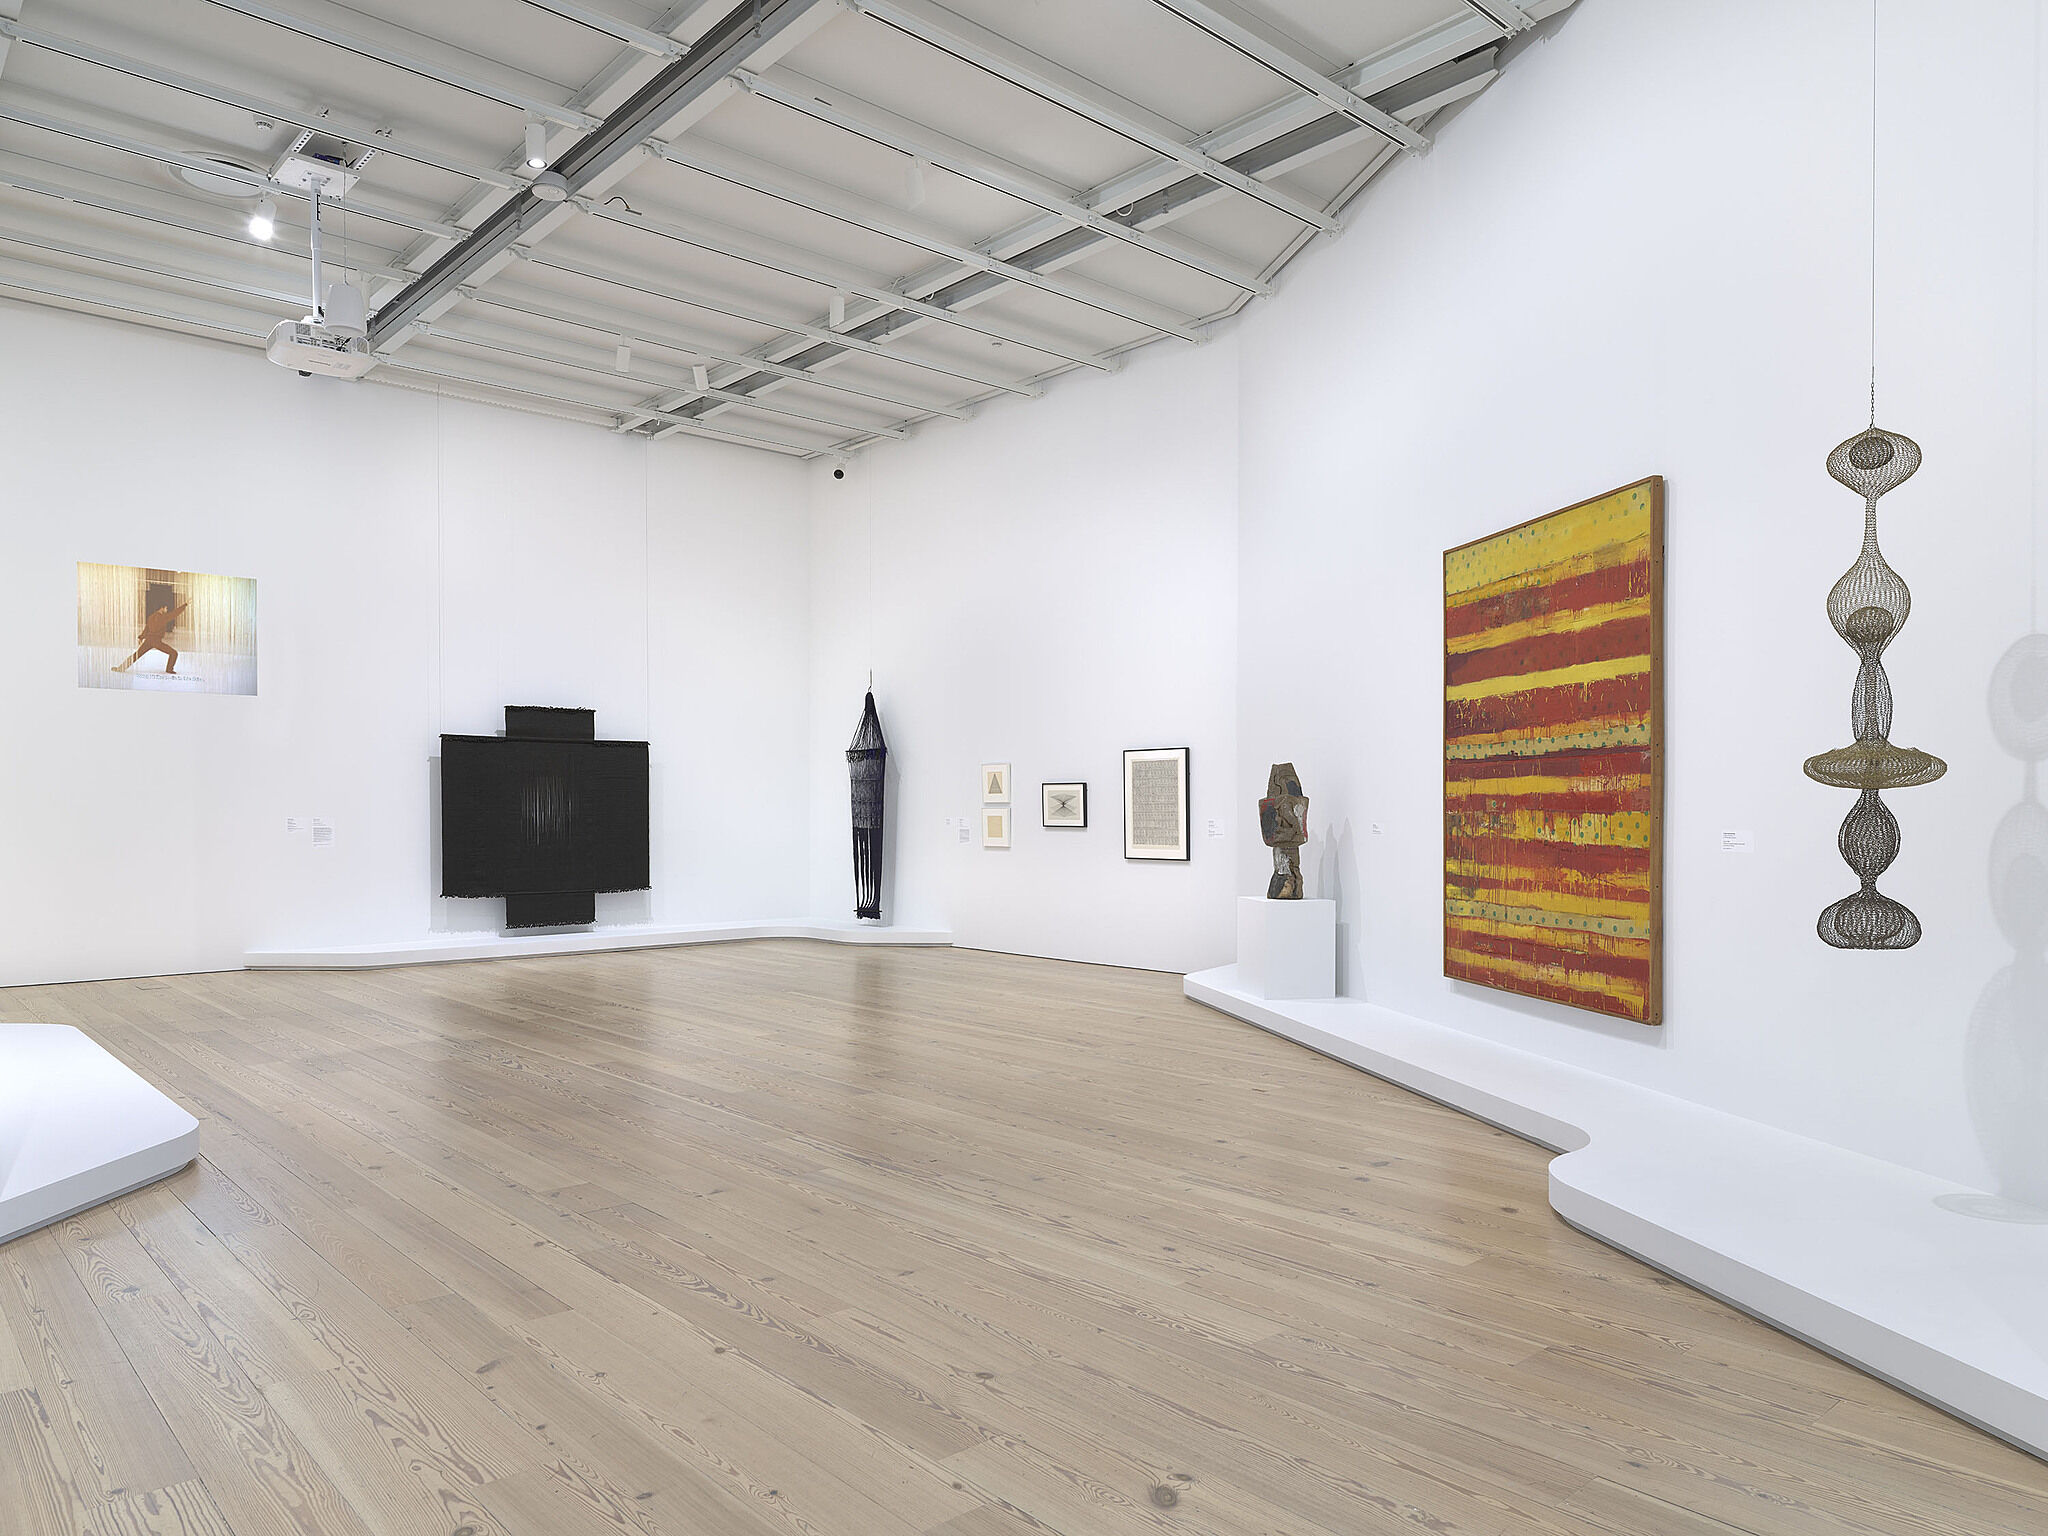 A photo of a Whitney gallery with various artworks.